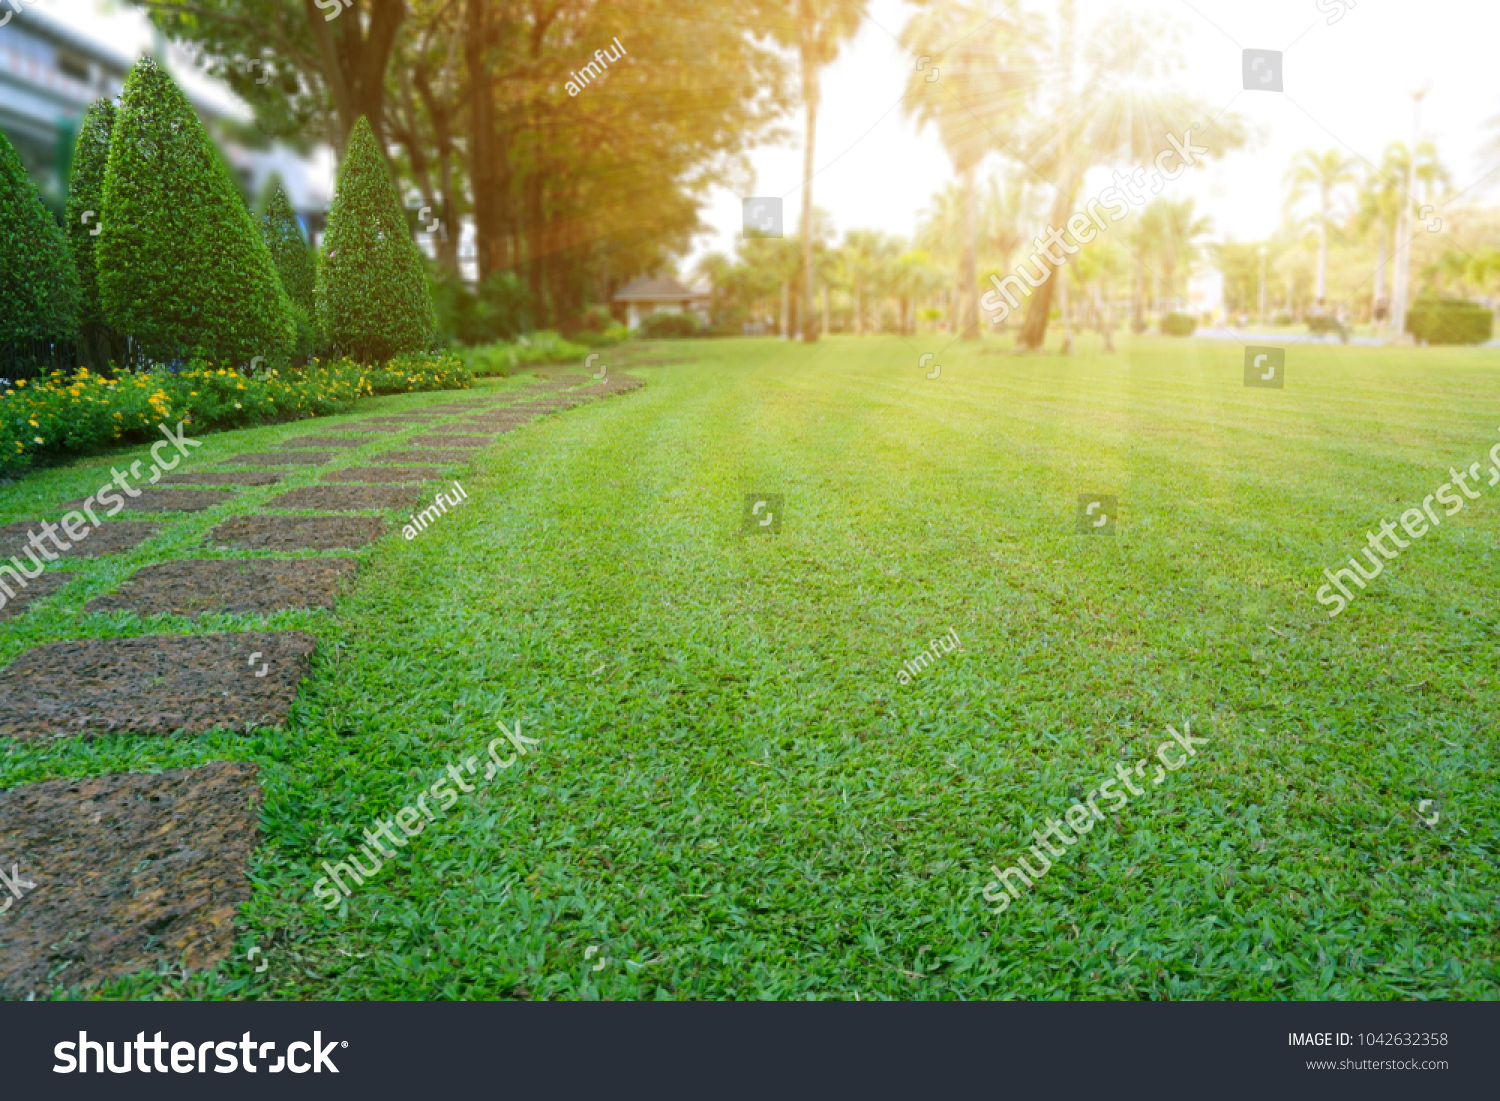 Pattern of Laterite stepping stone on a green Lawn backyard in the public park, Ficus and shurb on the left , Trees in background under evening sunlight